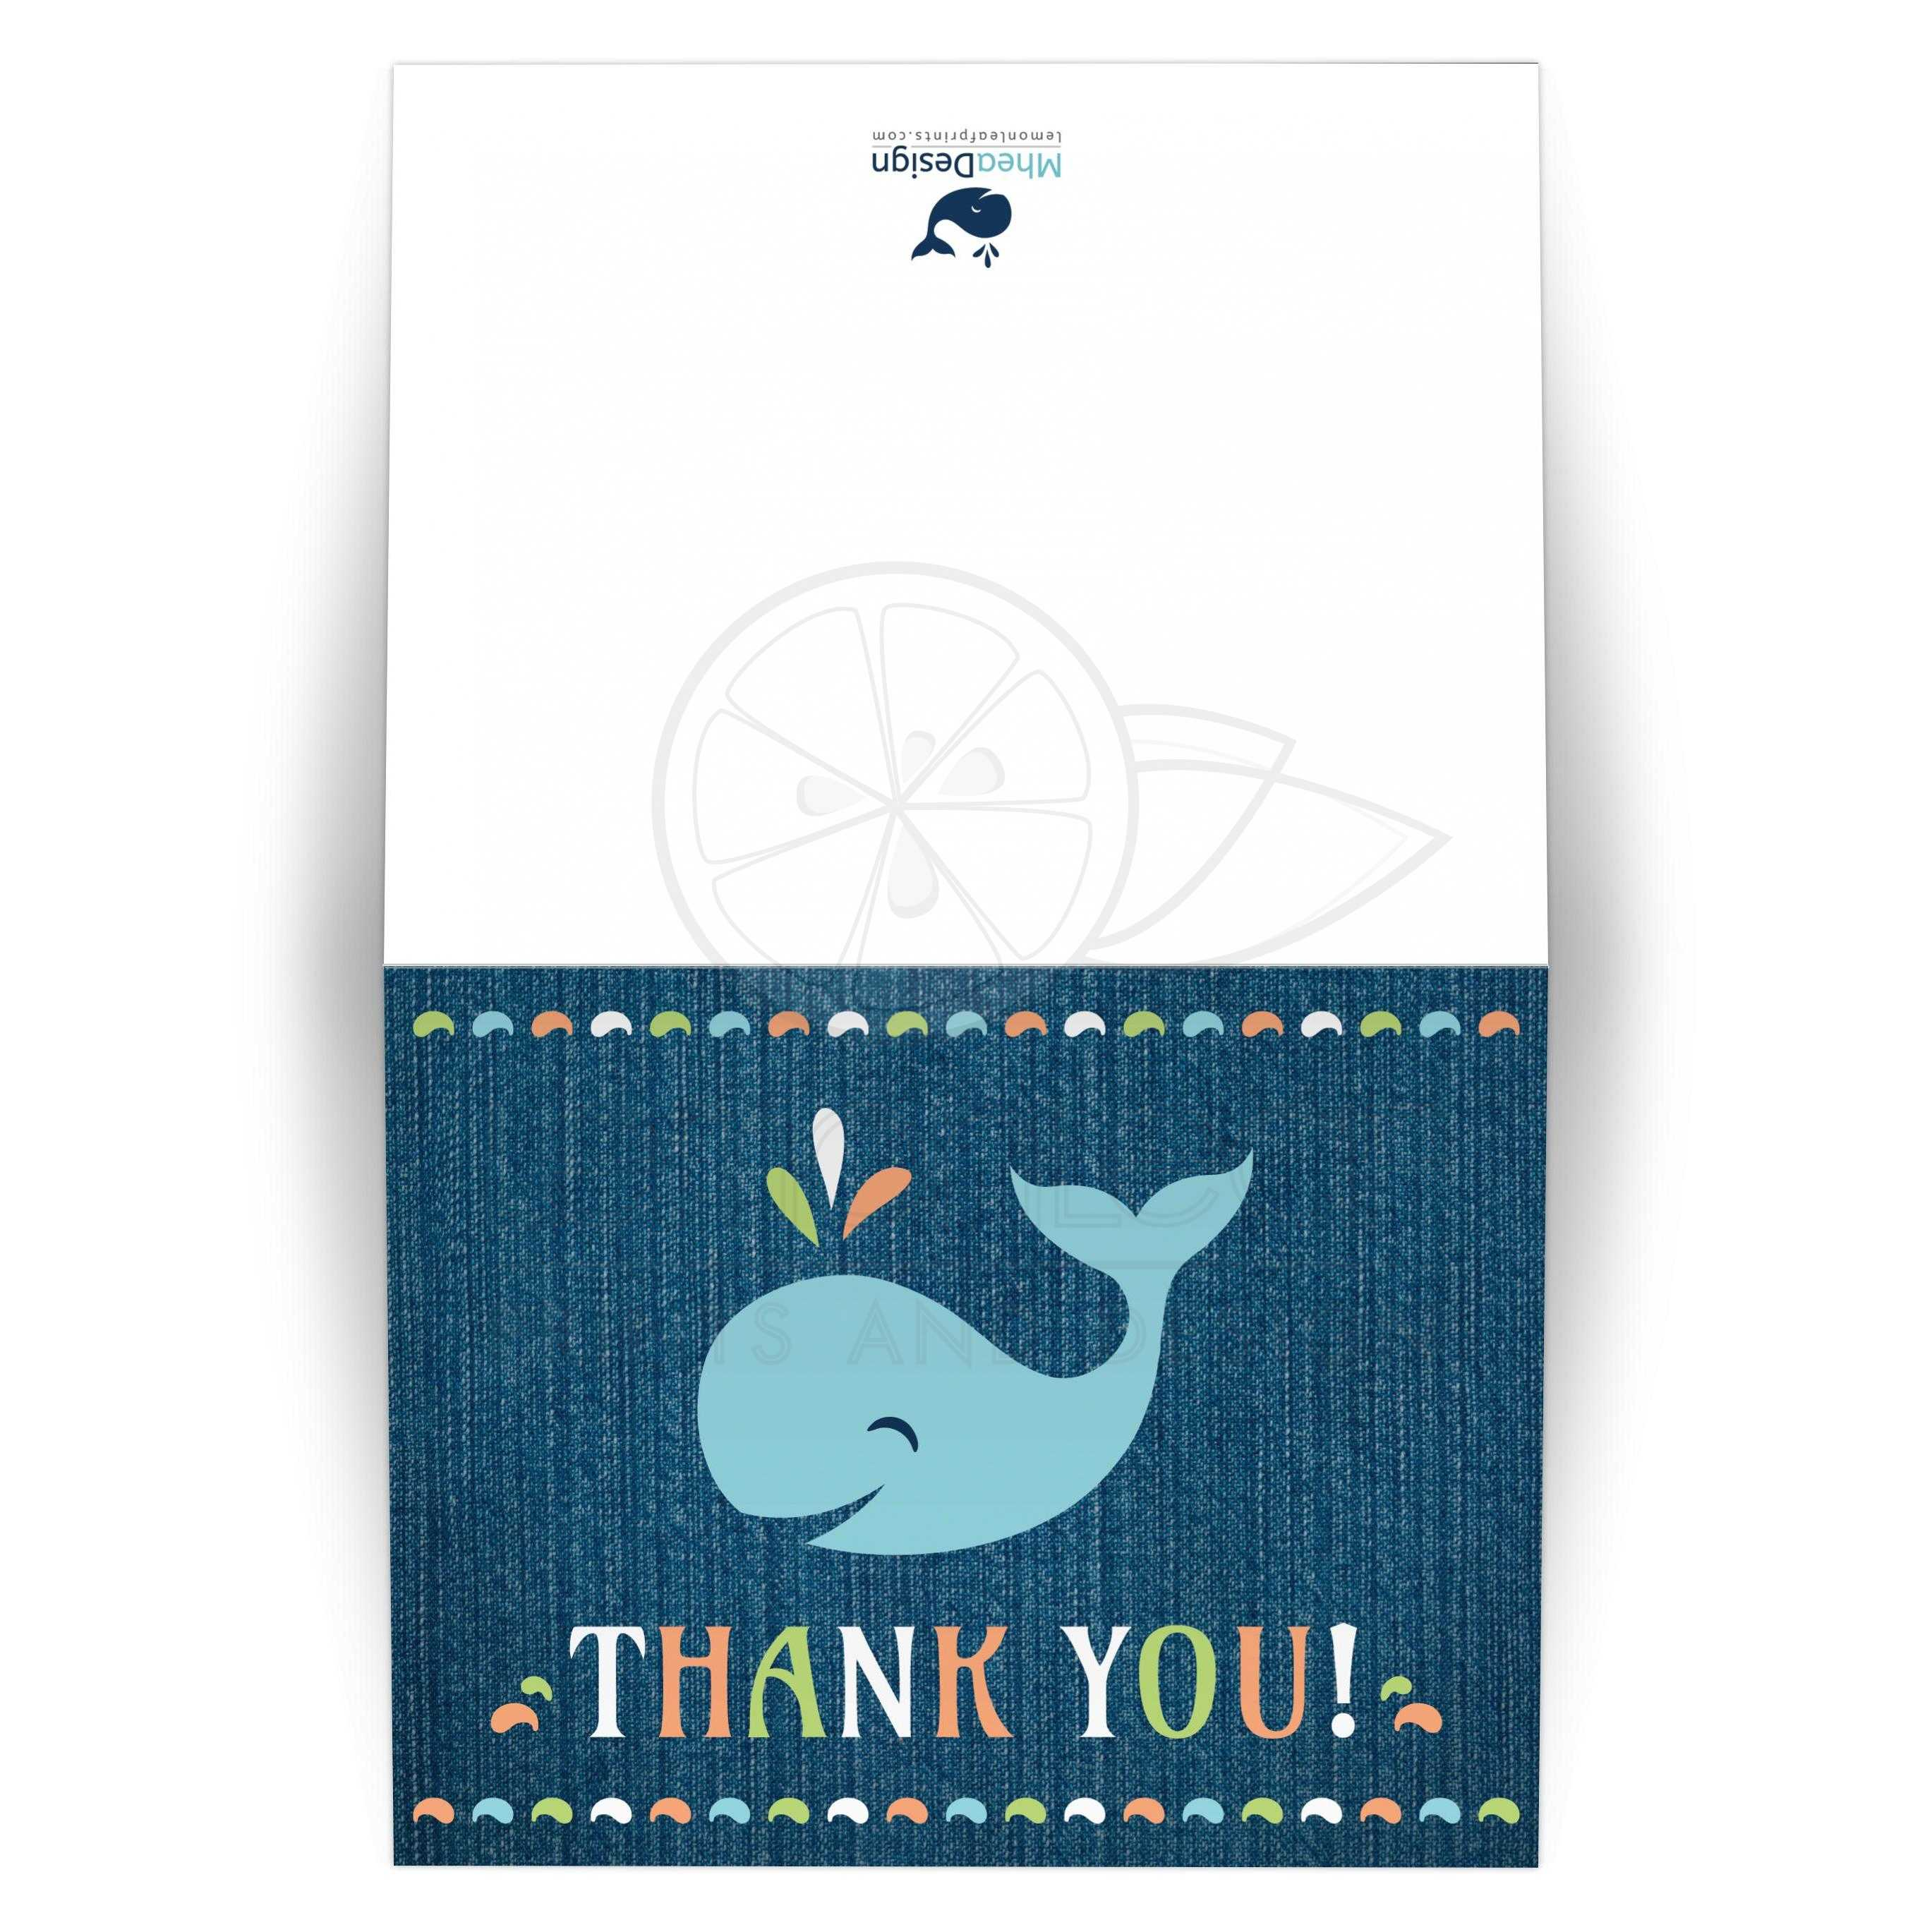 Cute, Gender Neutral Baby Shower Or Birthday Party Thank You Card With  Whale Illustration On